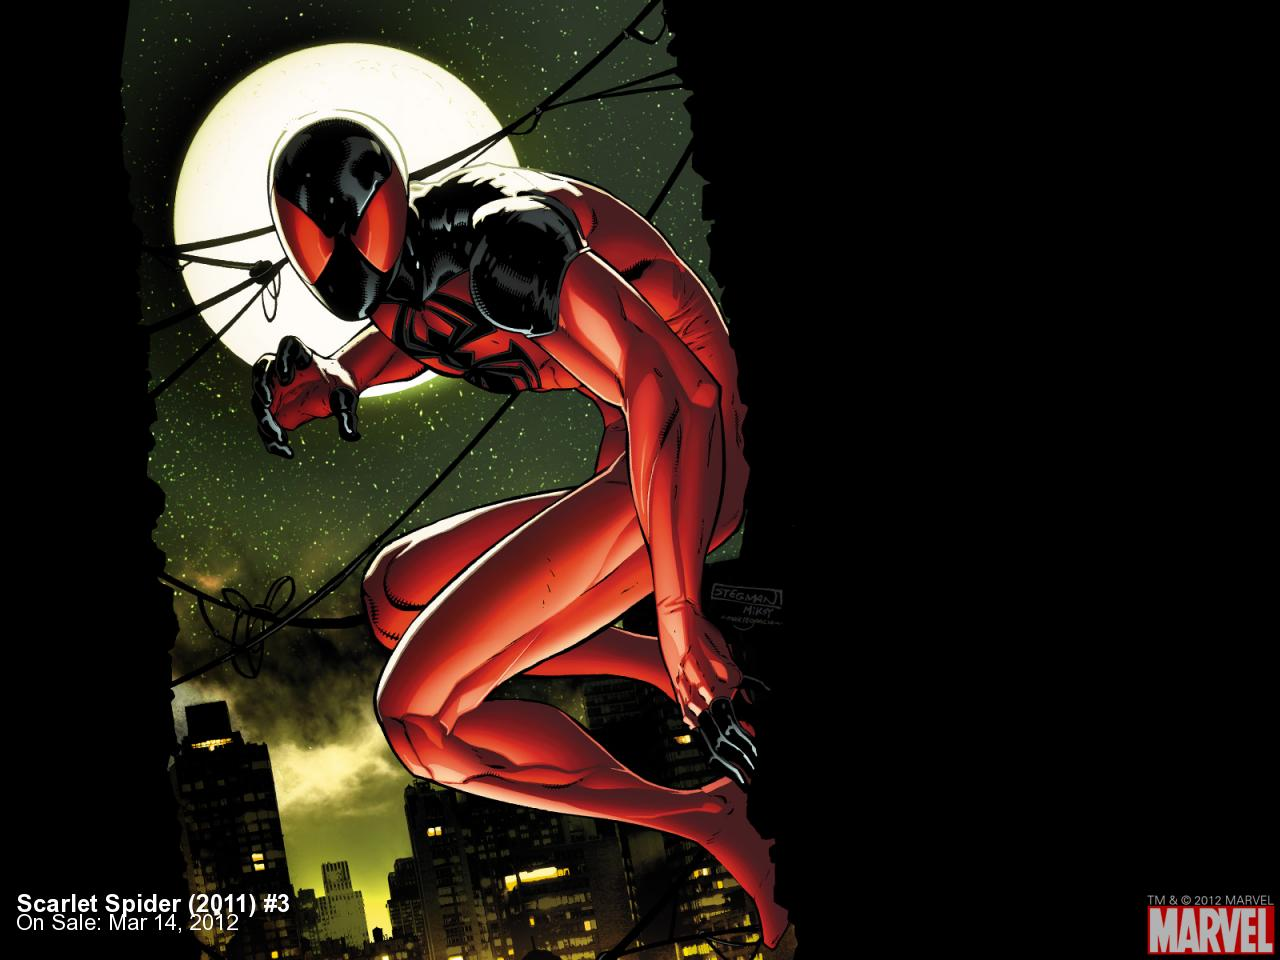 Scarlet Spider (2011) #3